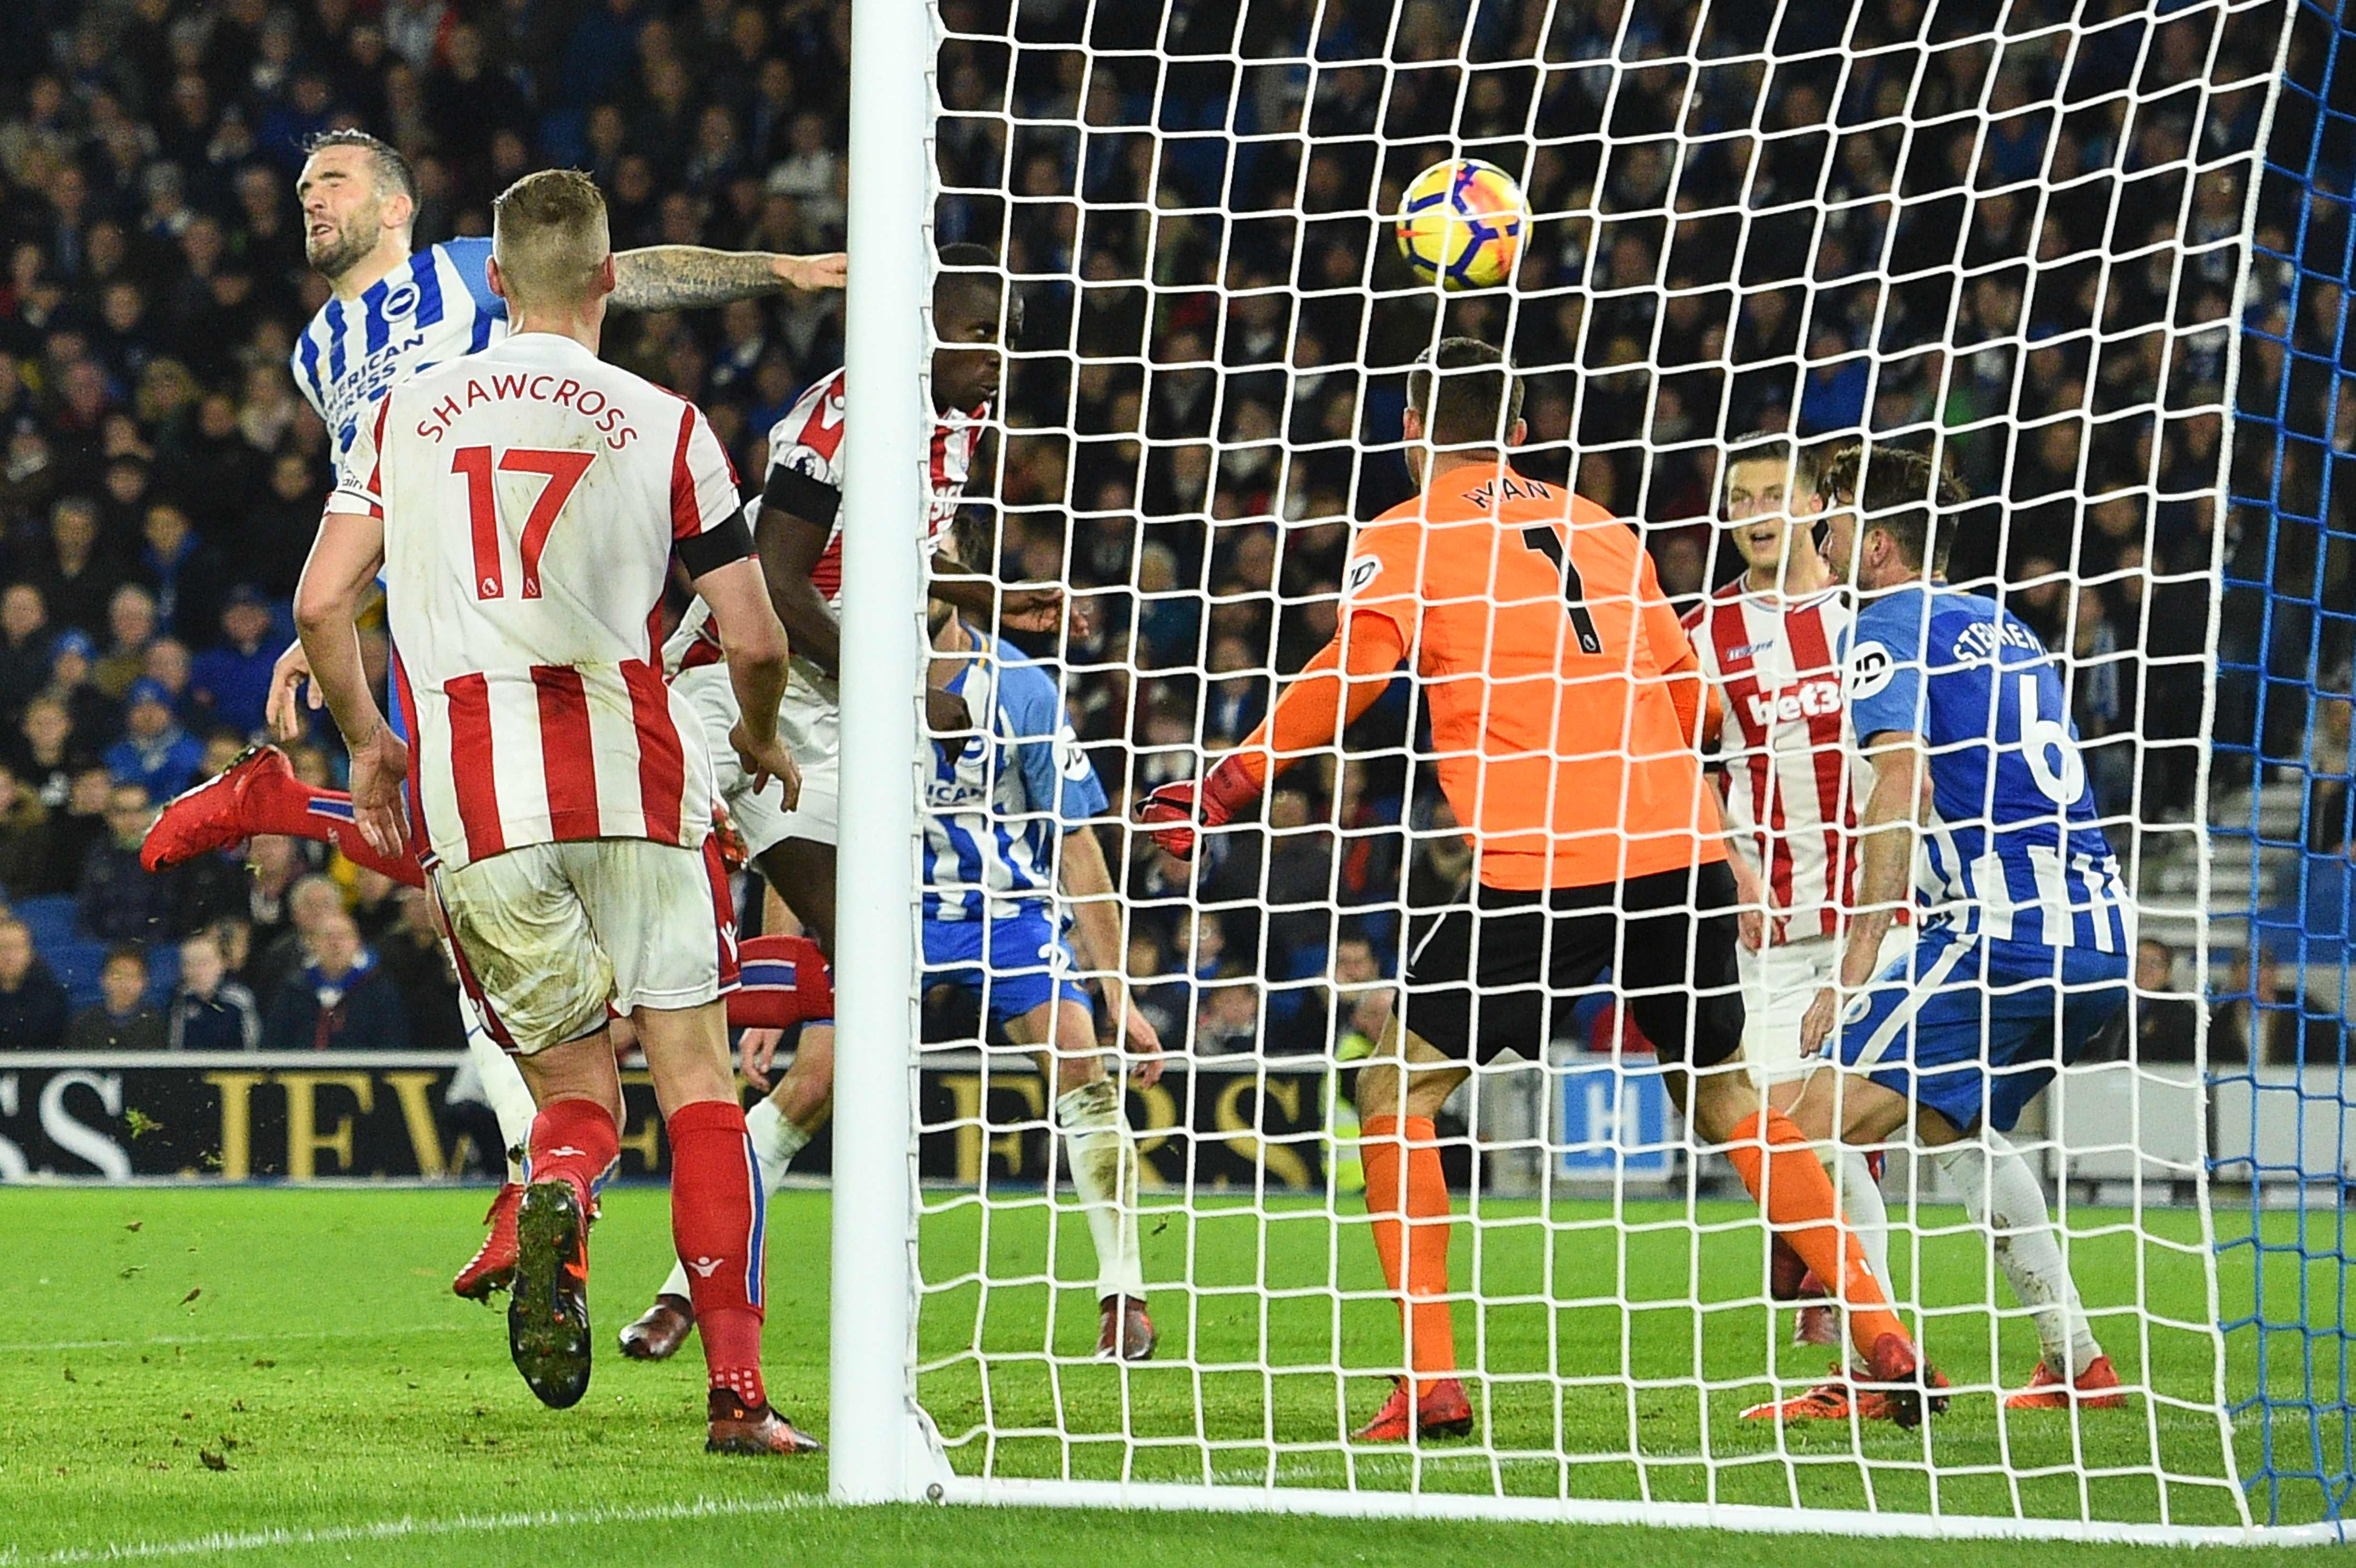 Chelsea loanee Kurt Zouma headed the Potters in front on the stroke of half time